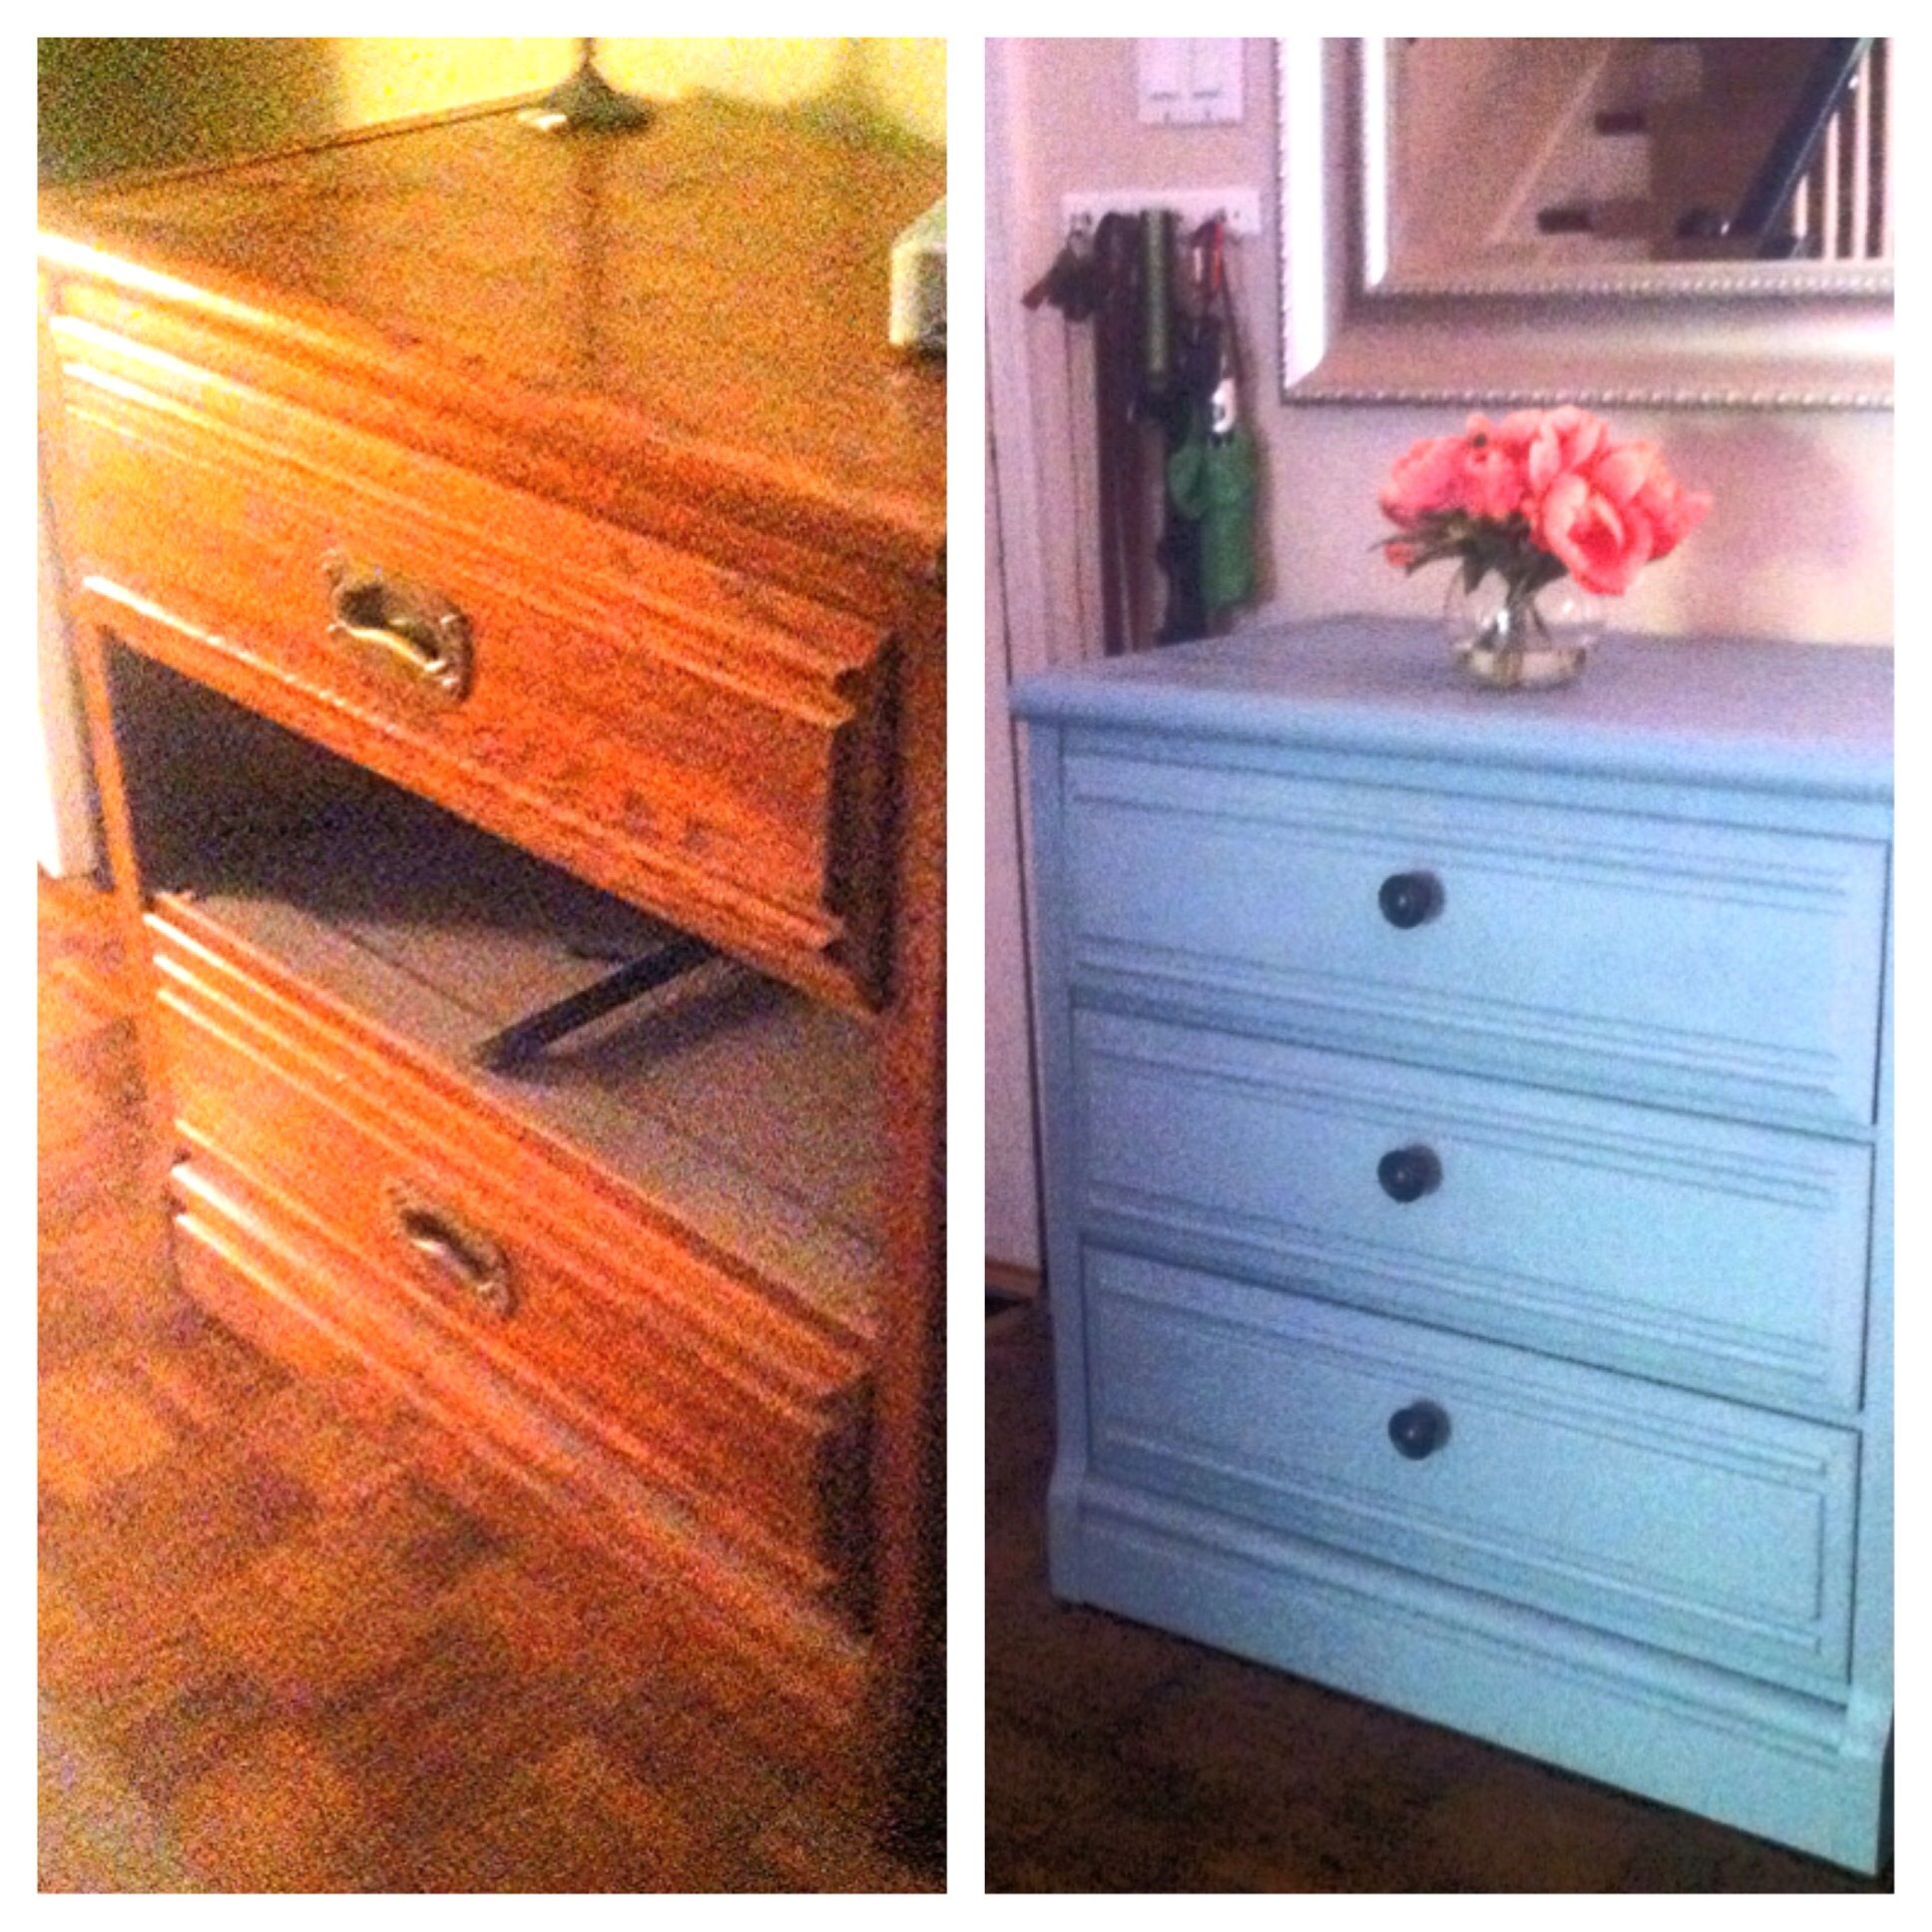 Diy Garage Sale Dresser Refinish  New Knobs & Valspar